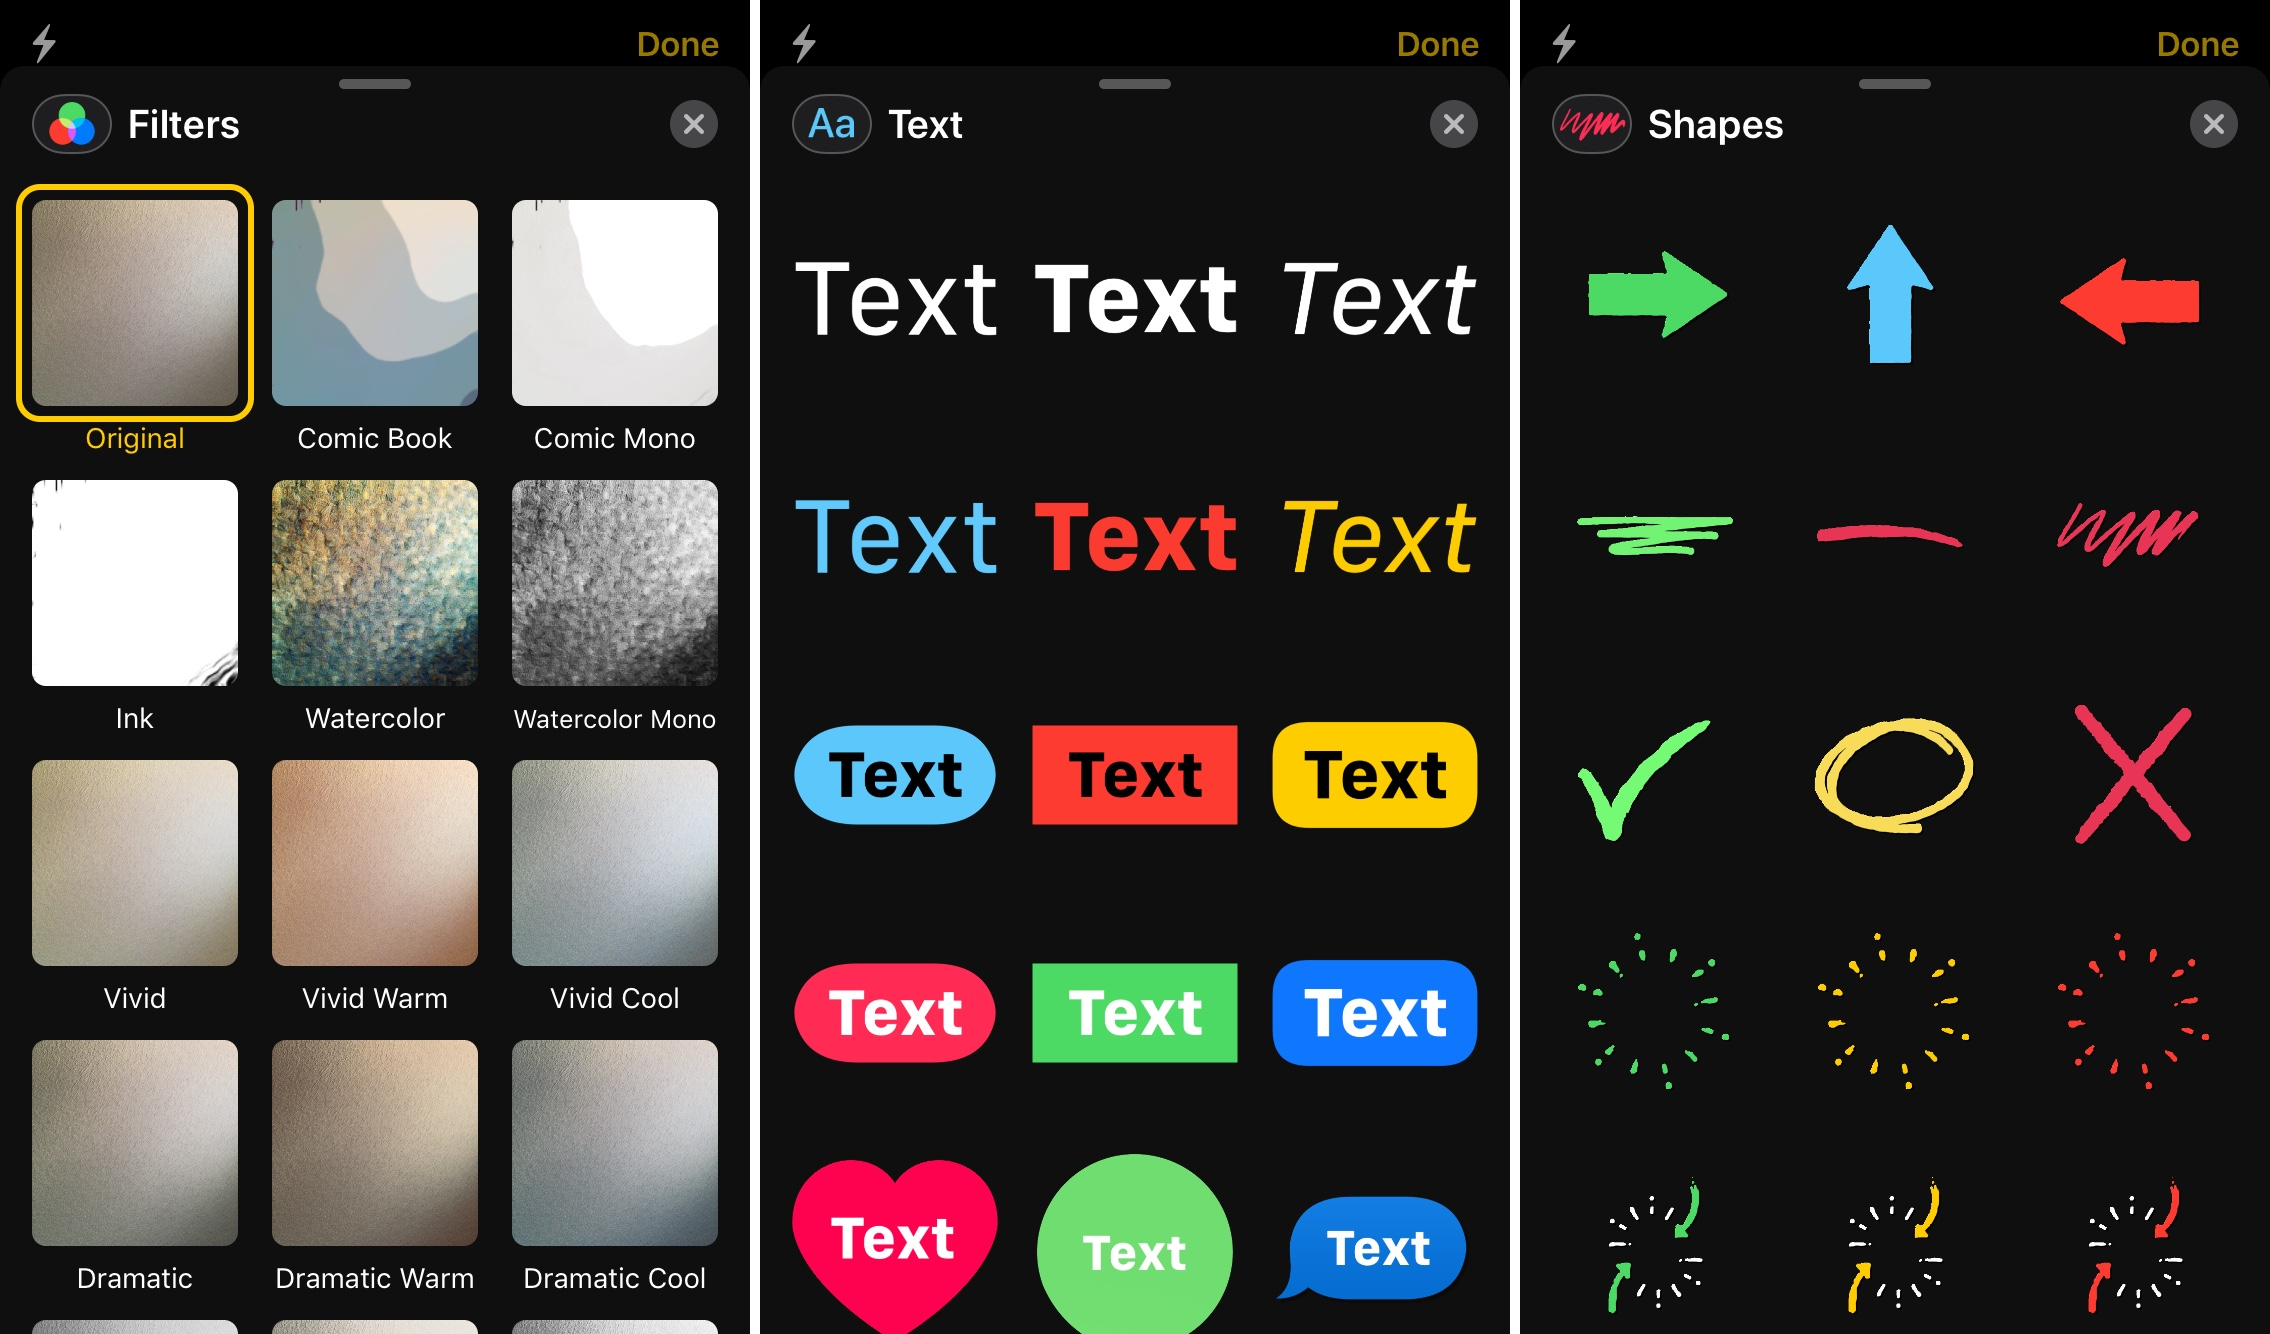 iMessage Filters Text Shapes